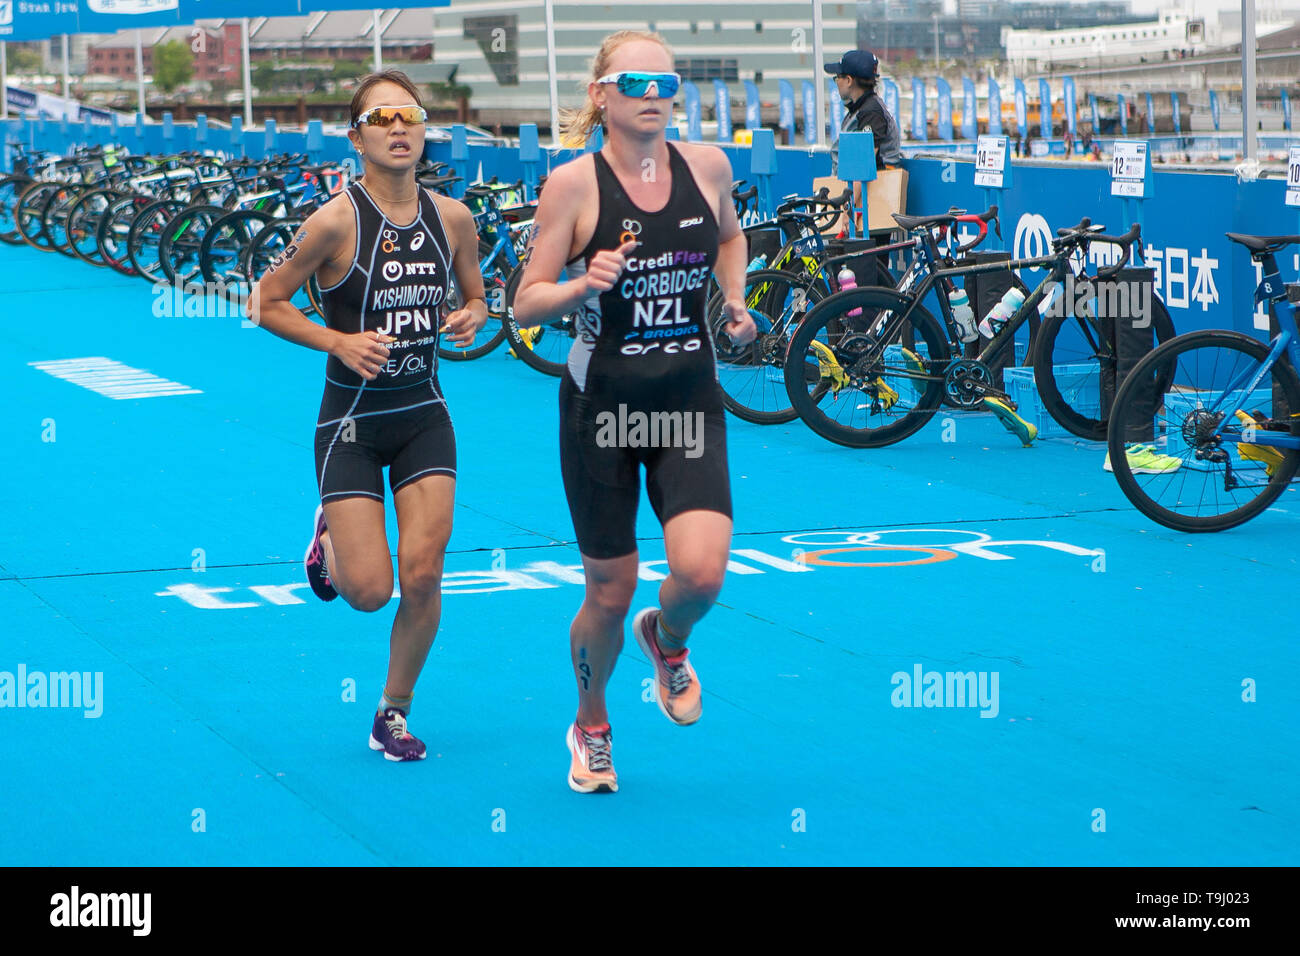 Yokohama, Japan. 18th May, 2019. 2019 ITU World Triathlon, World Paratriathlon Yokohama at Yamashita Park and Minato Mirai, Yokohama. Kishimoto, Corbridge (Photos by Michael Steinebach/AFLO) Credit: Aflo Co. Ltd./Alamy Live News Stock Photo